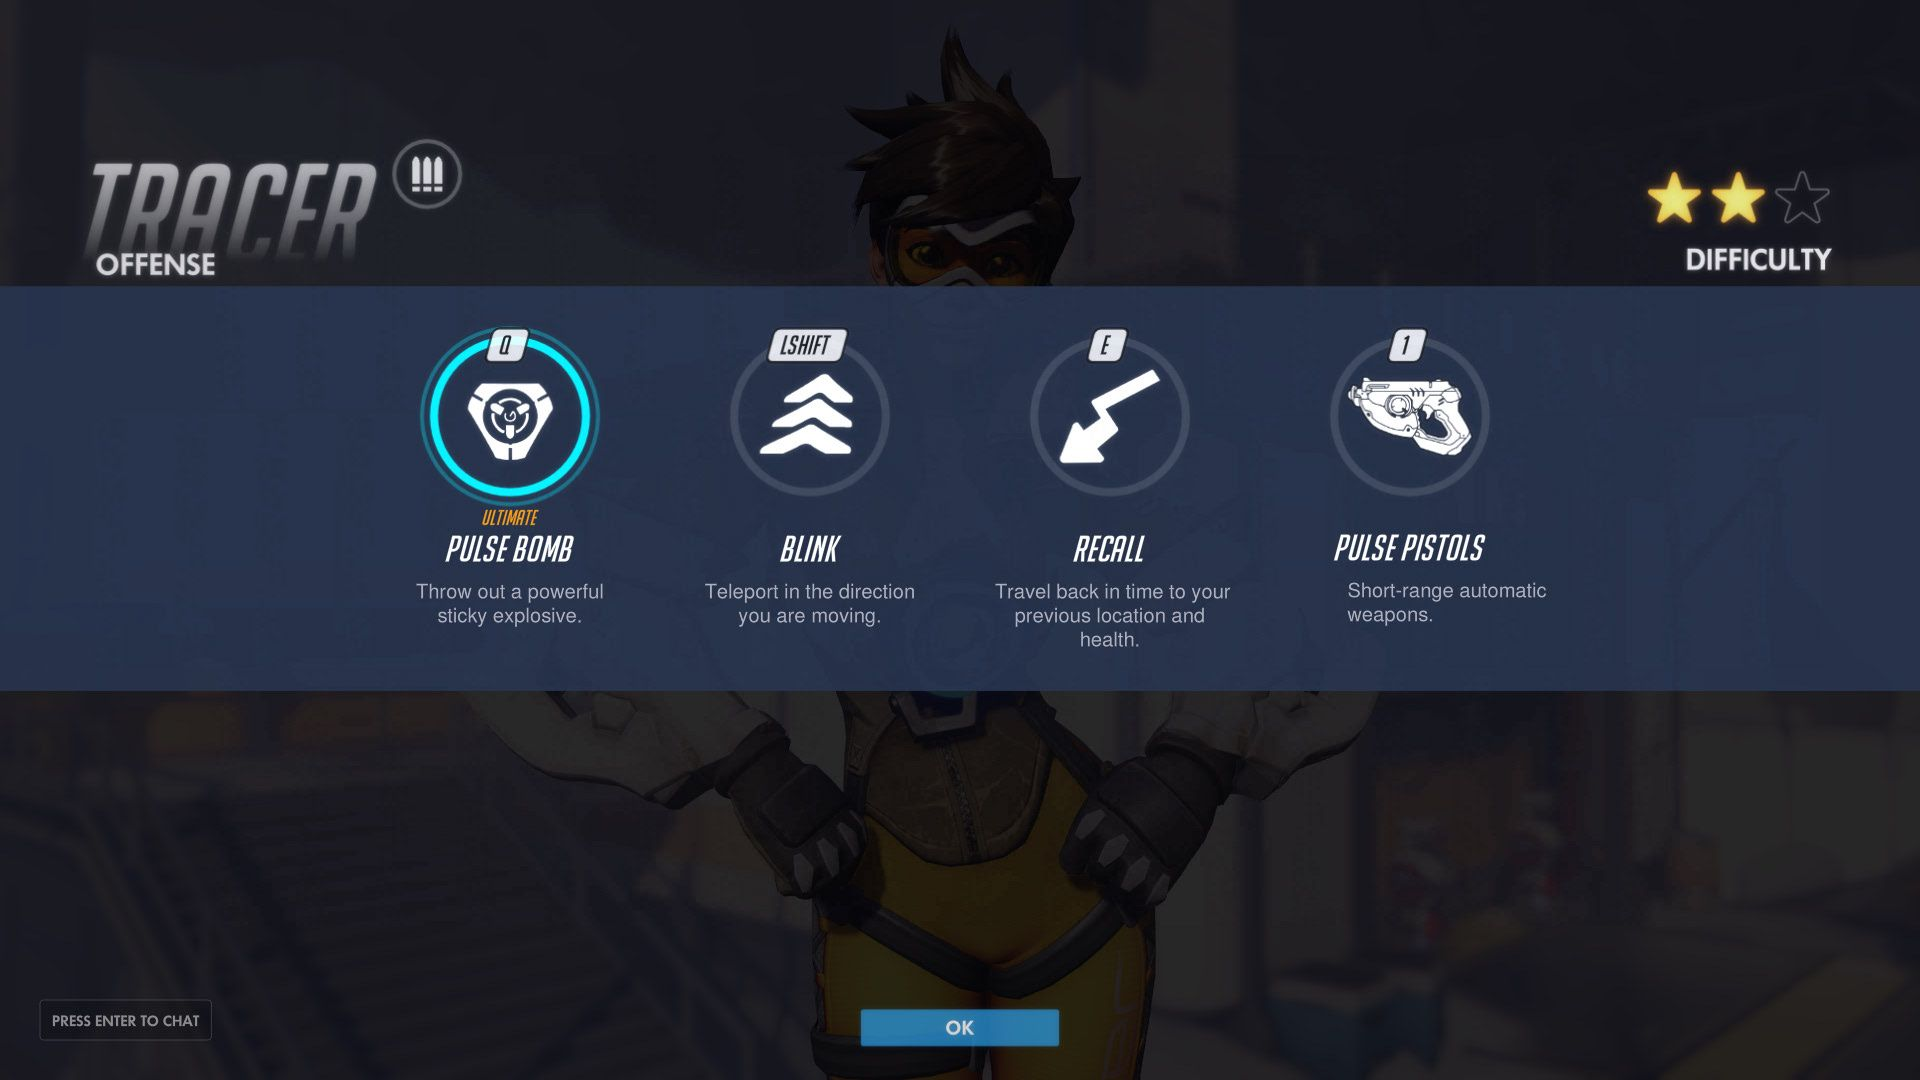 Tracer offense abilities overwatch ability icons pinterest do you have what it takes to be a hero that best deal damage and has the goal of seeking out engaging and destroying the enemy player in overwatch buycottarizona